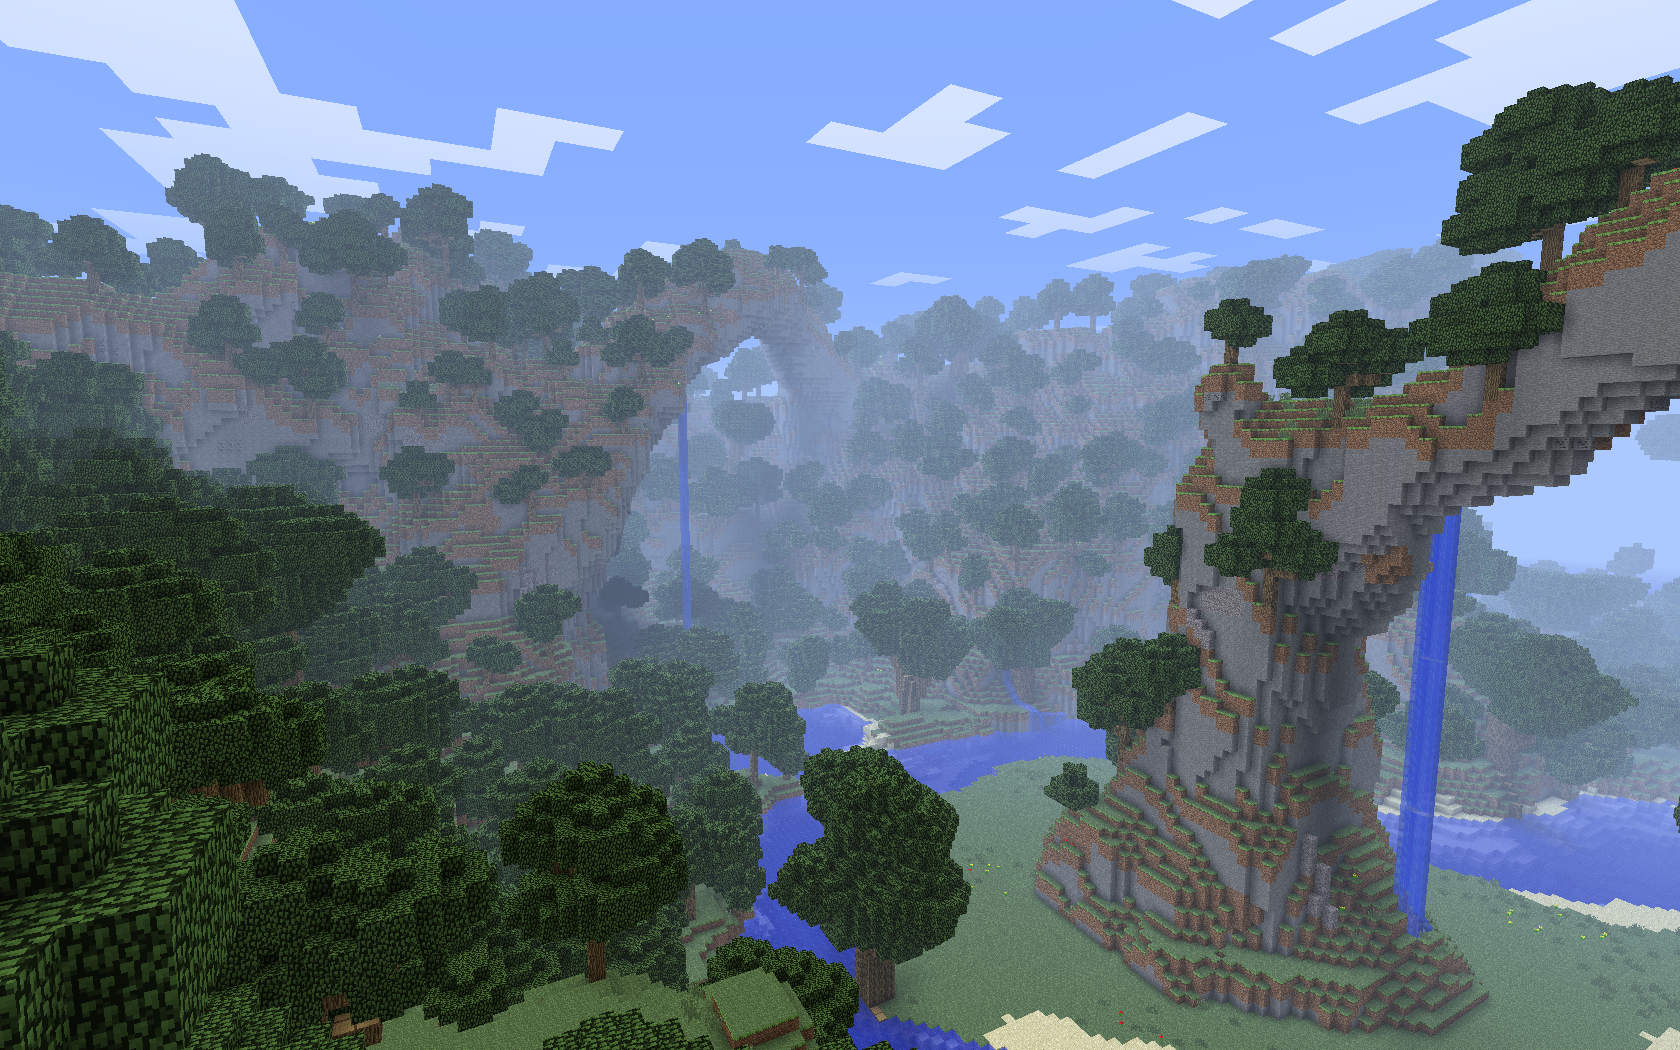 Popular Wallpaper Minecraft Scenery - epic_minecraft_scenery__1680x1050__by_tugtugbug-d5rhban  Snapshot_234124.png